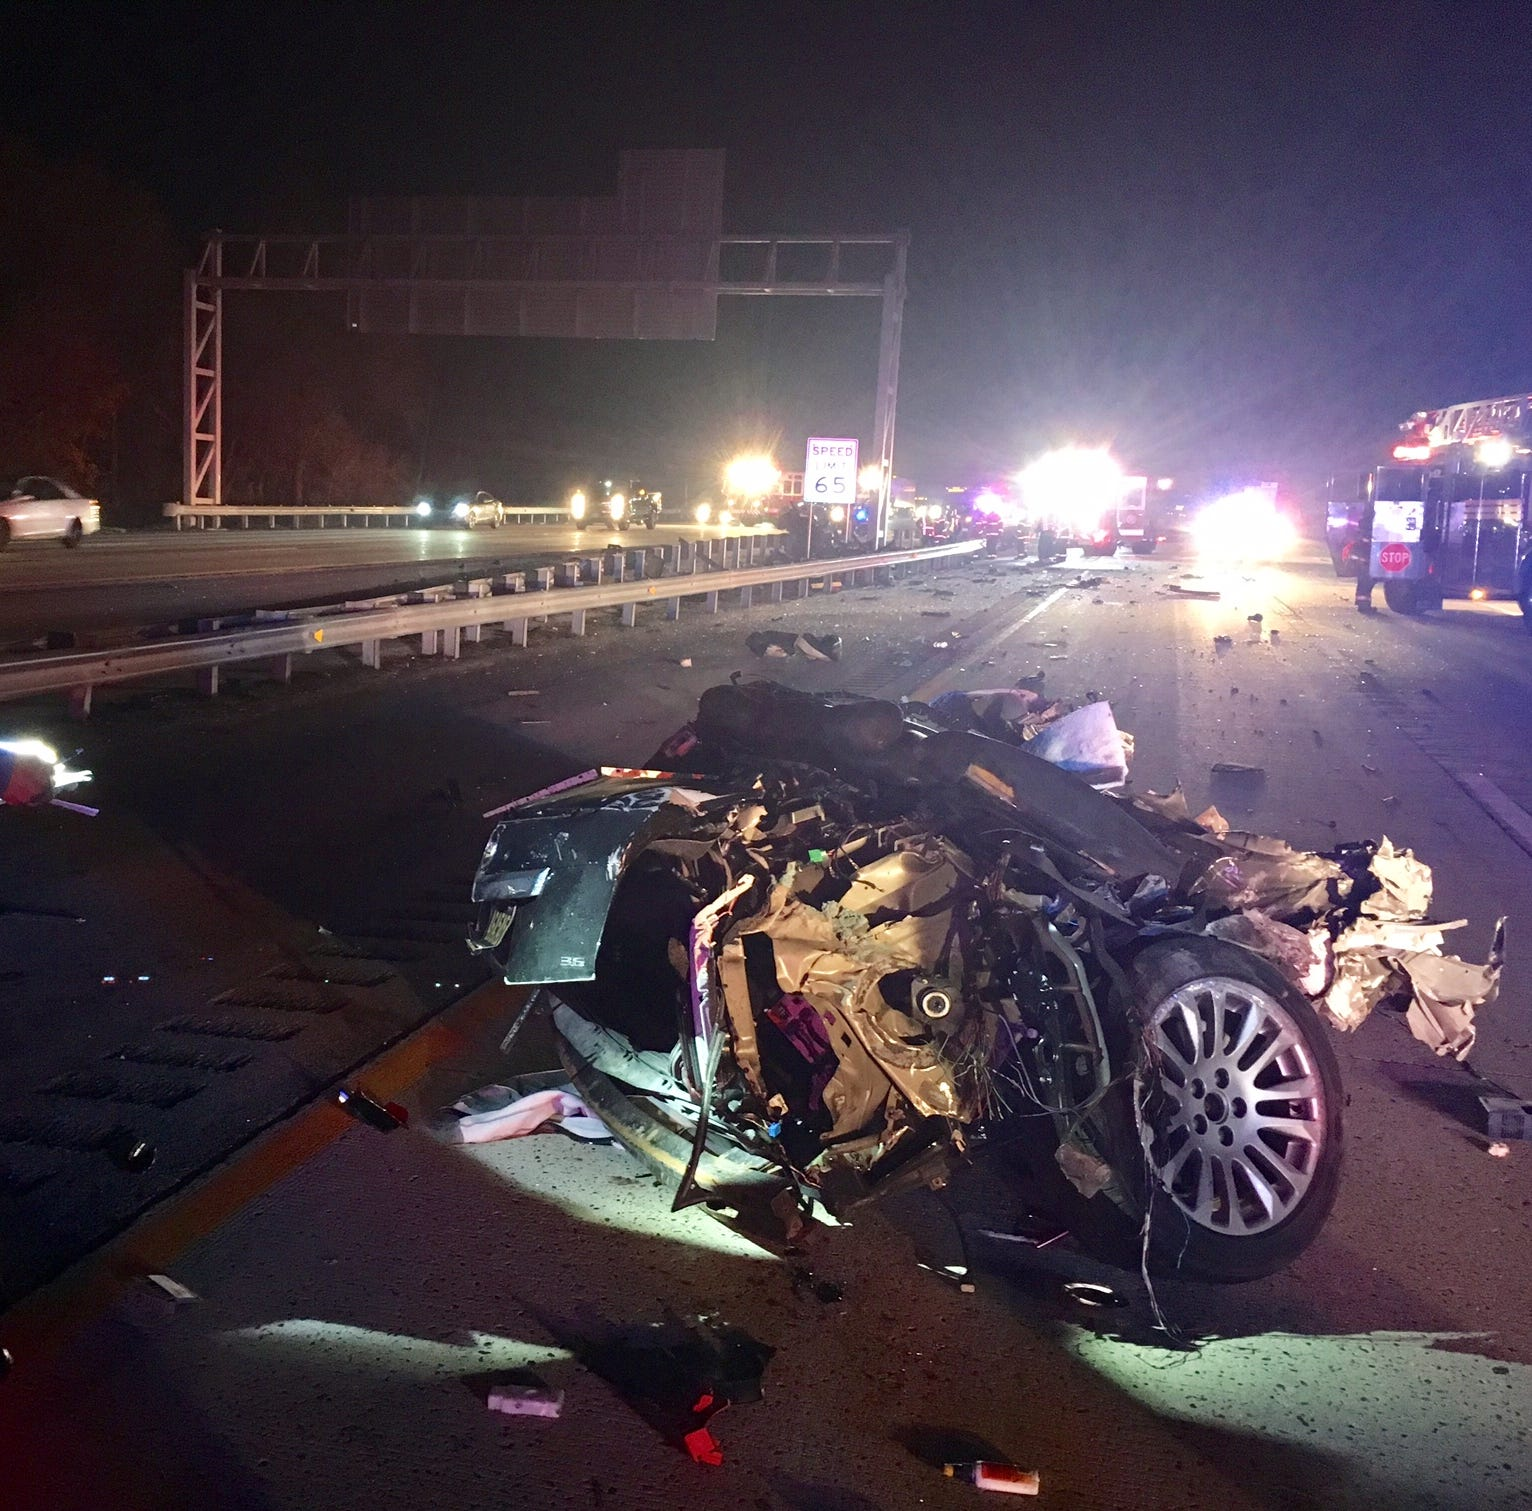 Two killed in high-speed crash on Del. 1 that split car in half, police say